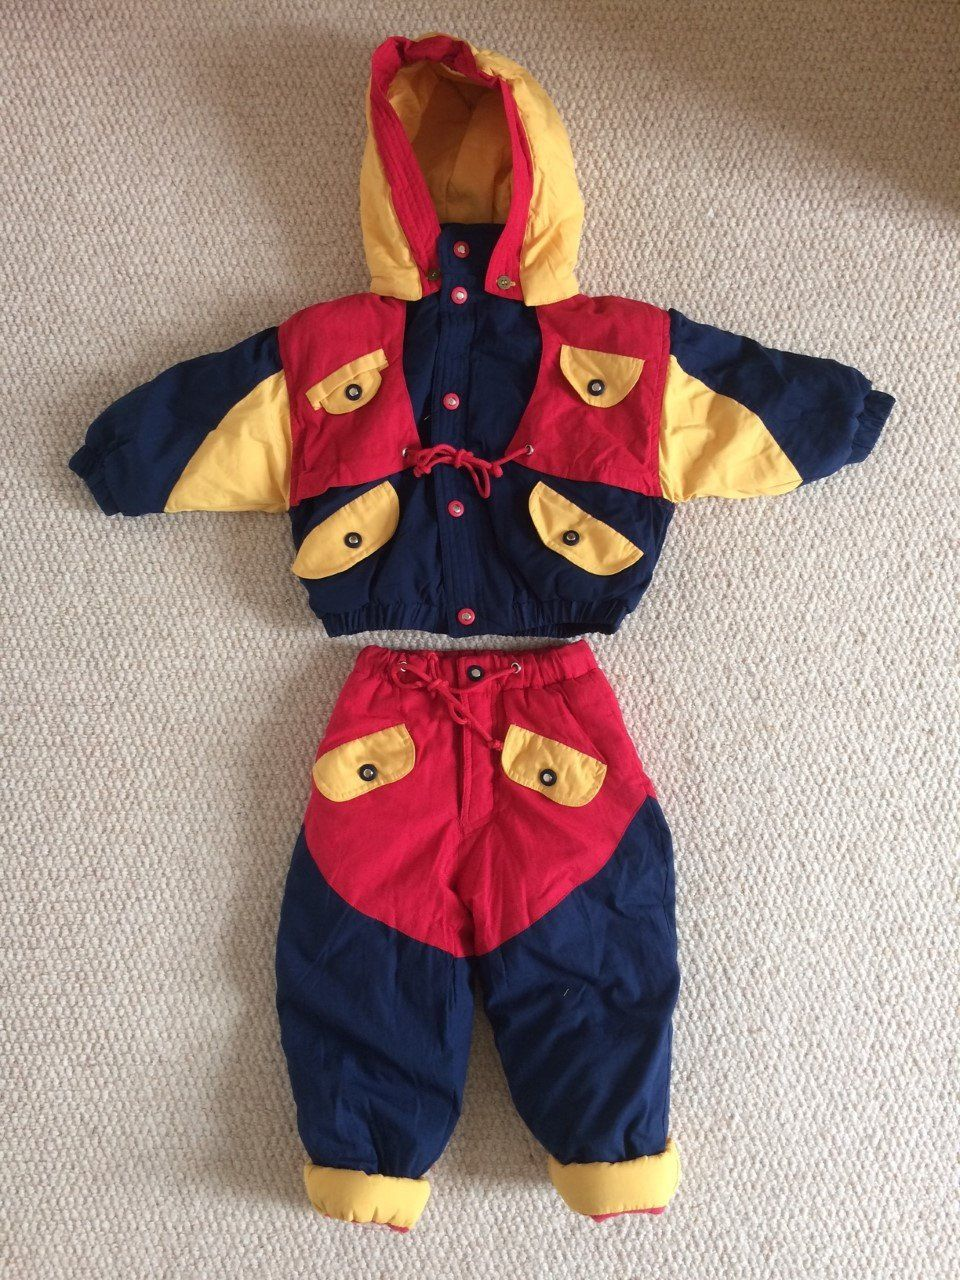 a8860f384 Vintage 90s Childs Kids Multi Colour Padded Ski Snow Suit Jacket Trousers  Age 2 by WilderPeople on Etsy